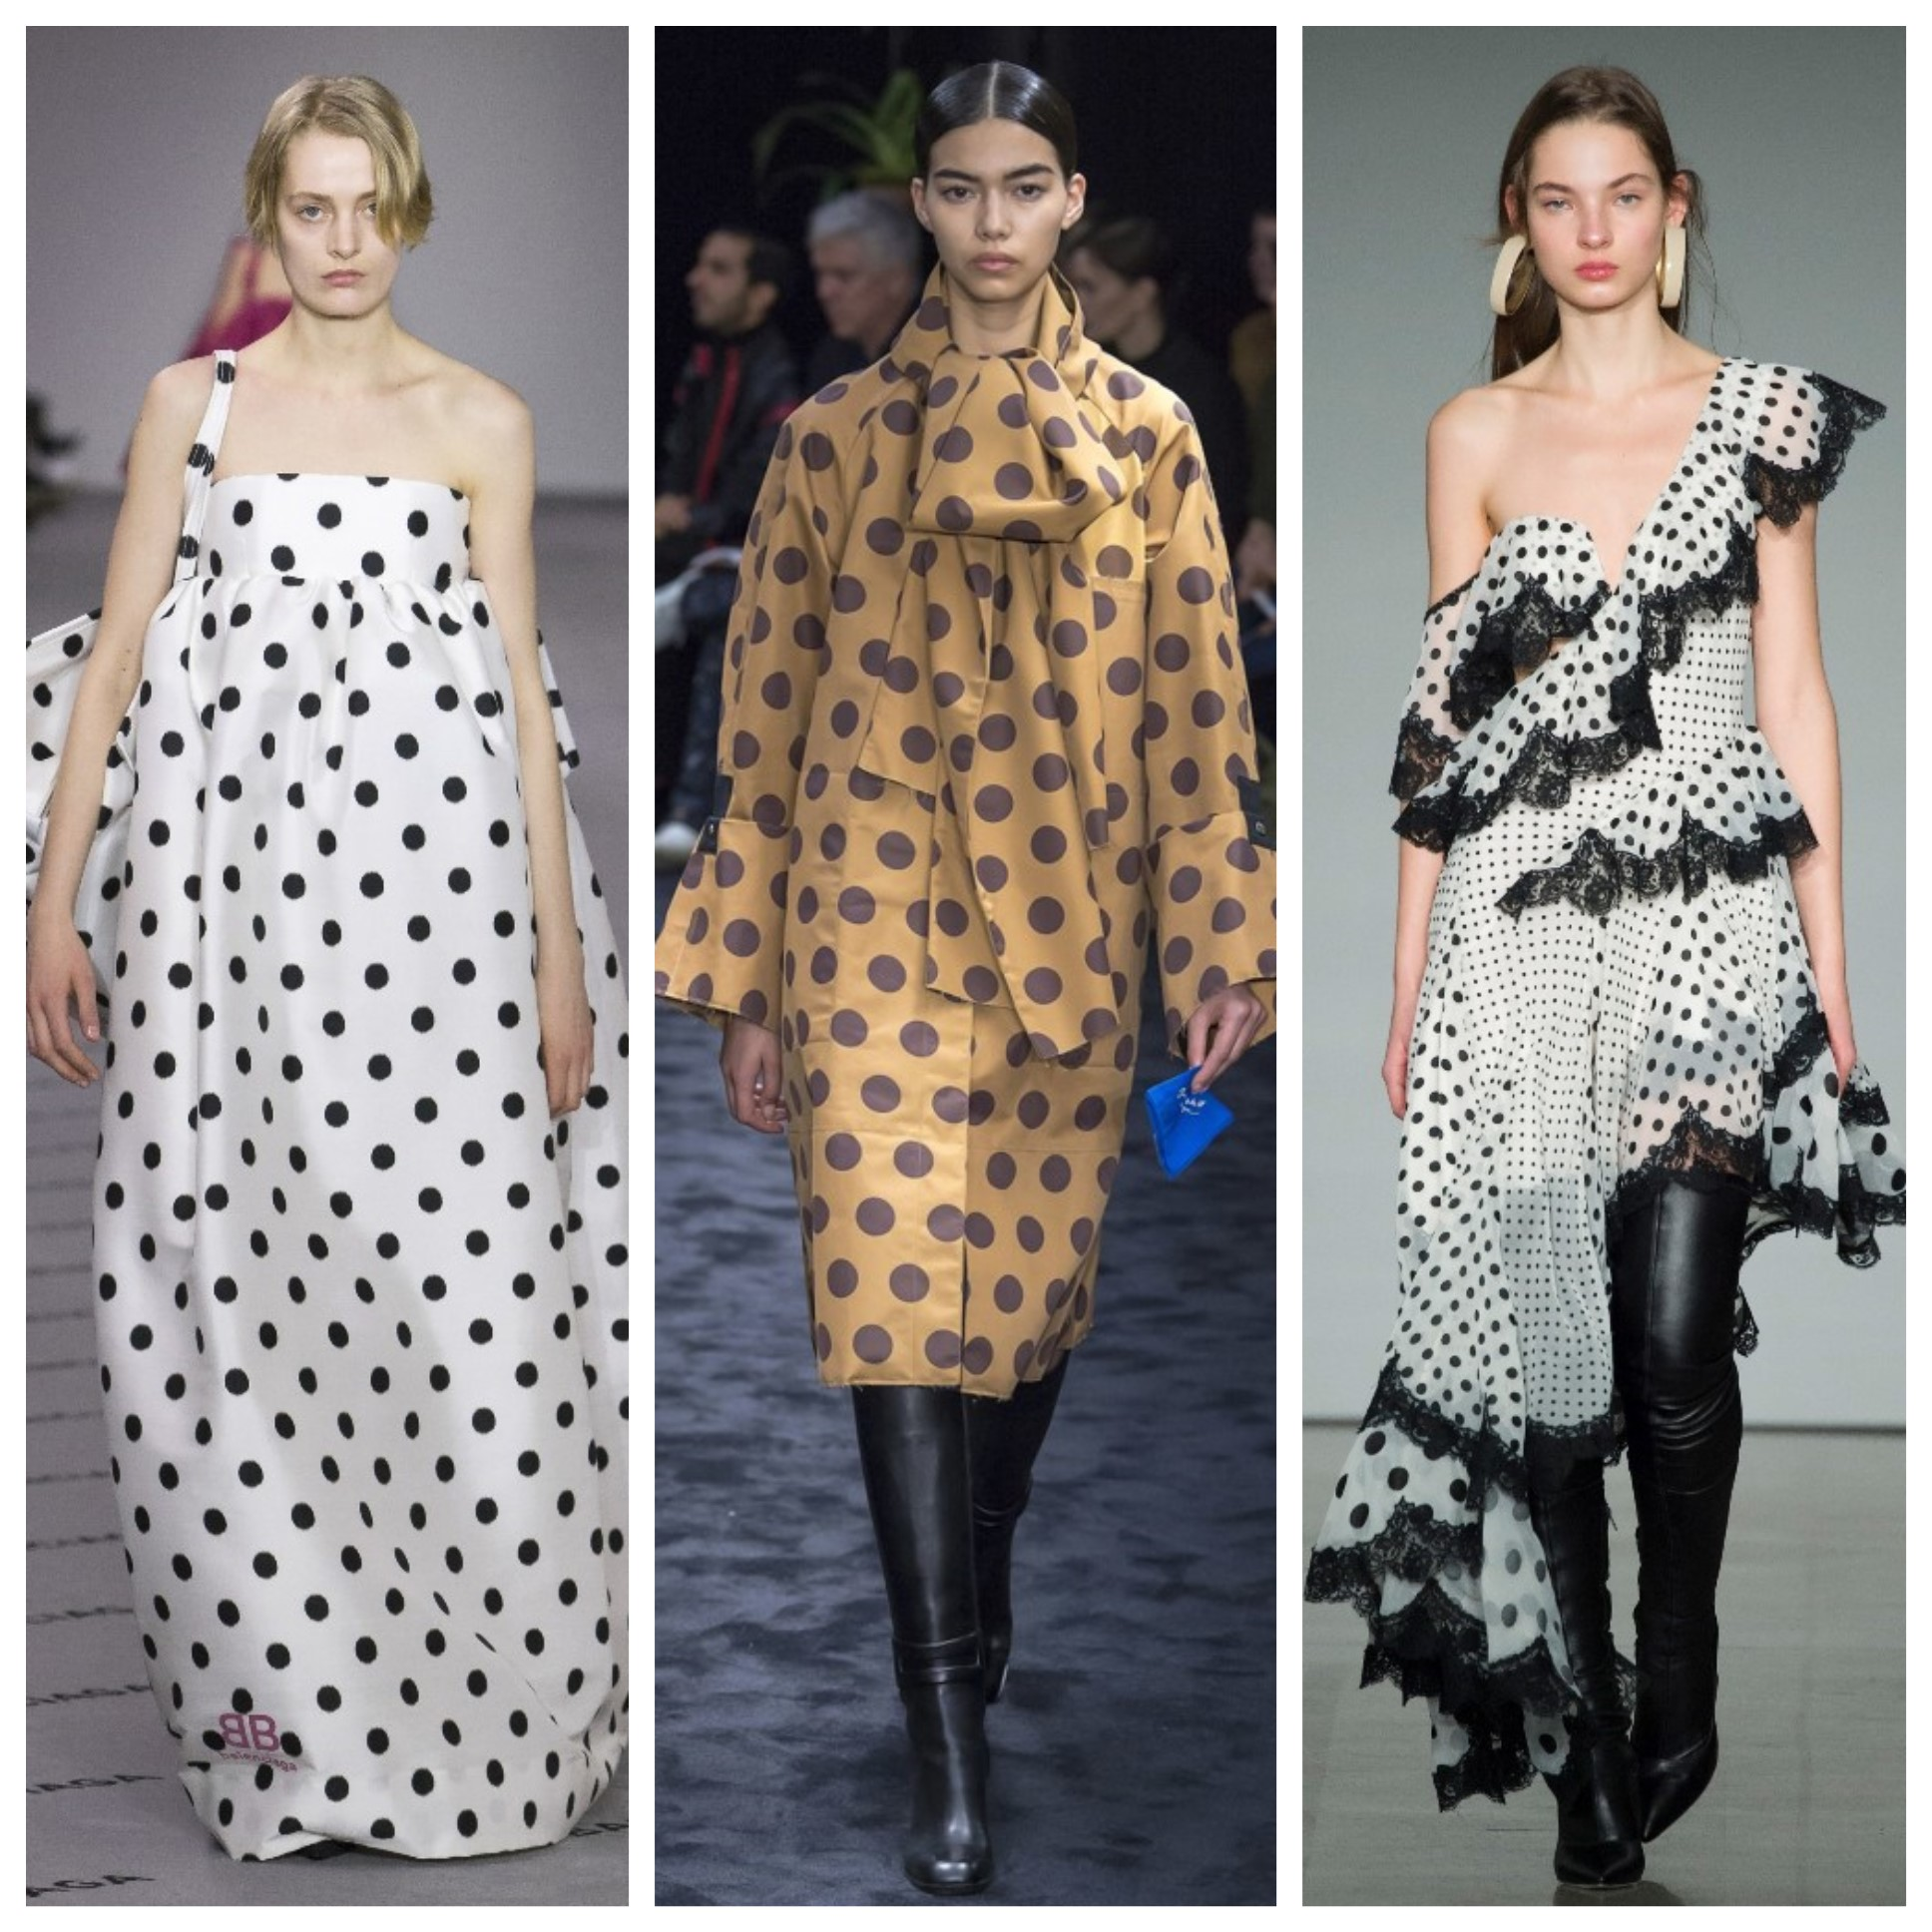 Catching Several Spring21 Trends in One Outfit